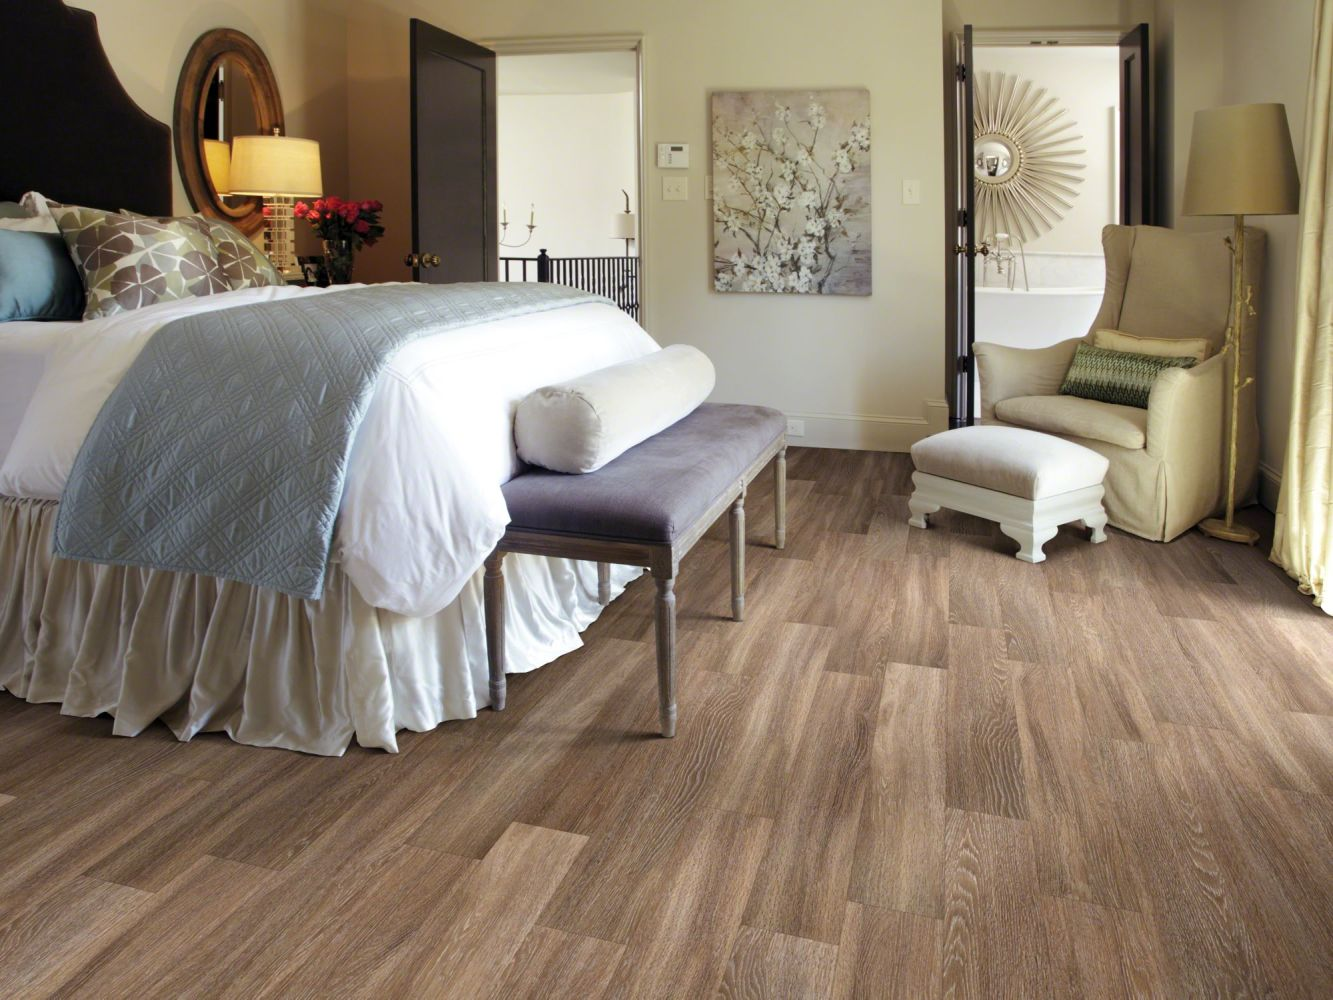 Shaw Floors Exclusive Pacific Coast12 Seattle 00574_1029V